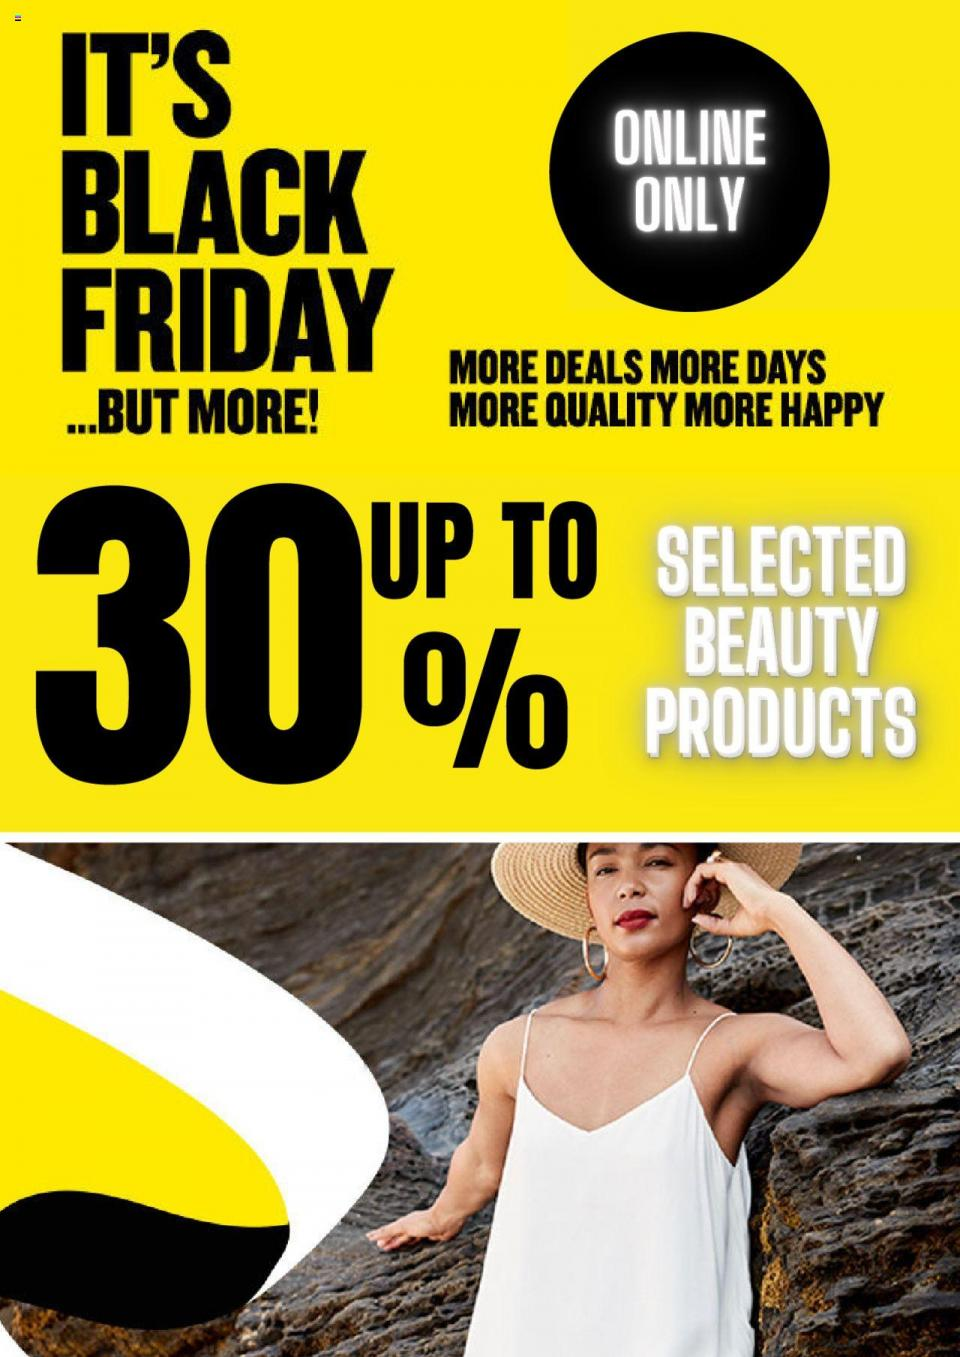 woolworths specials black friday beauty 2 november 2020